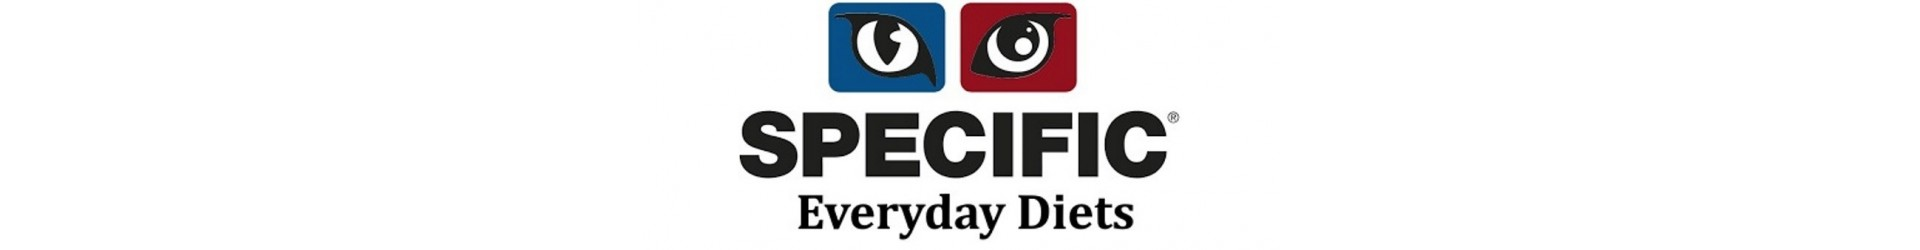 Specific Everyday Diets